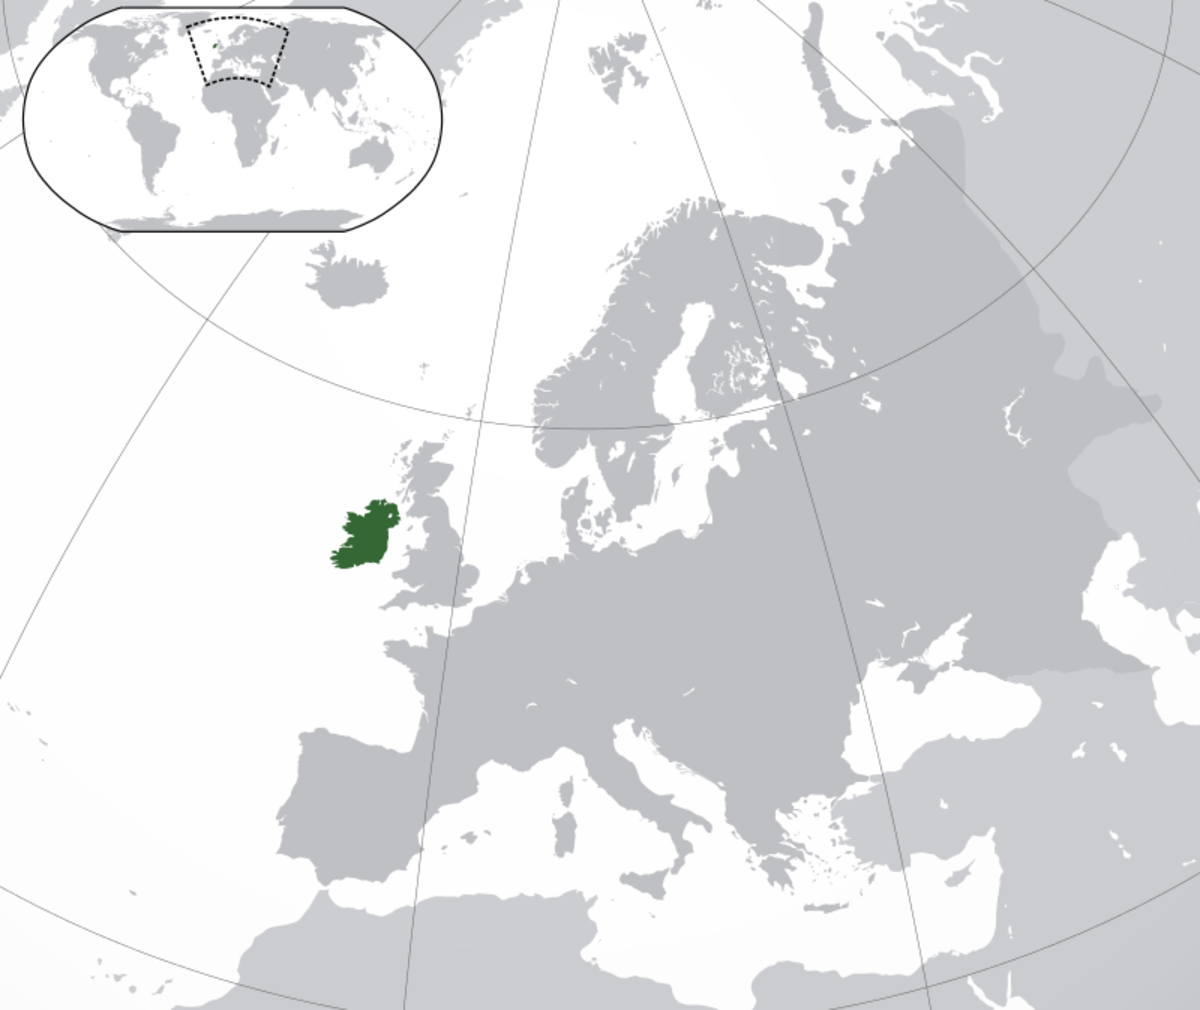 Map showing Ireland